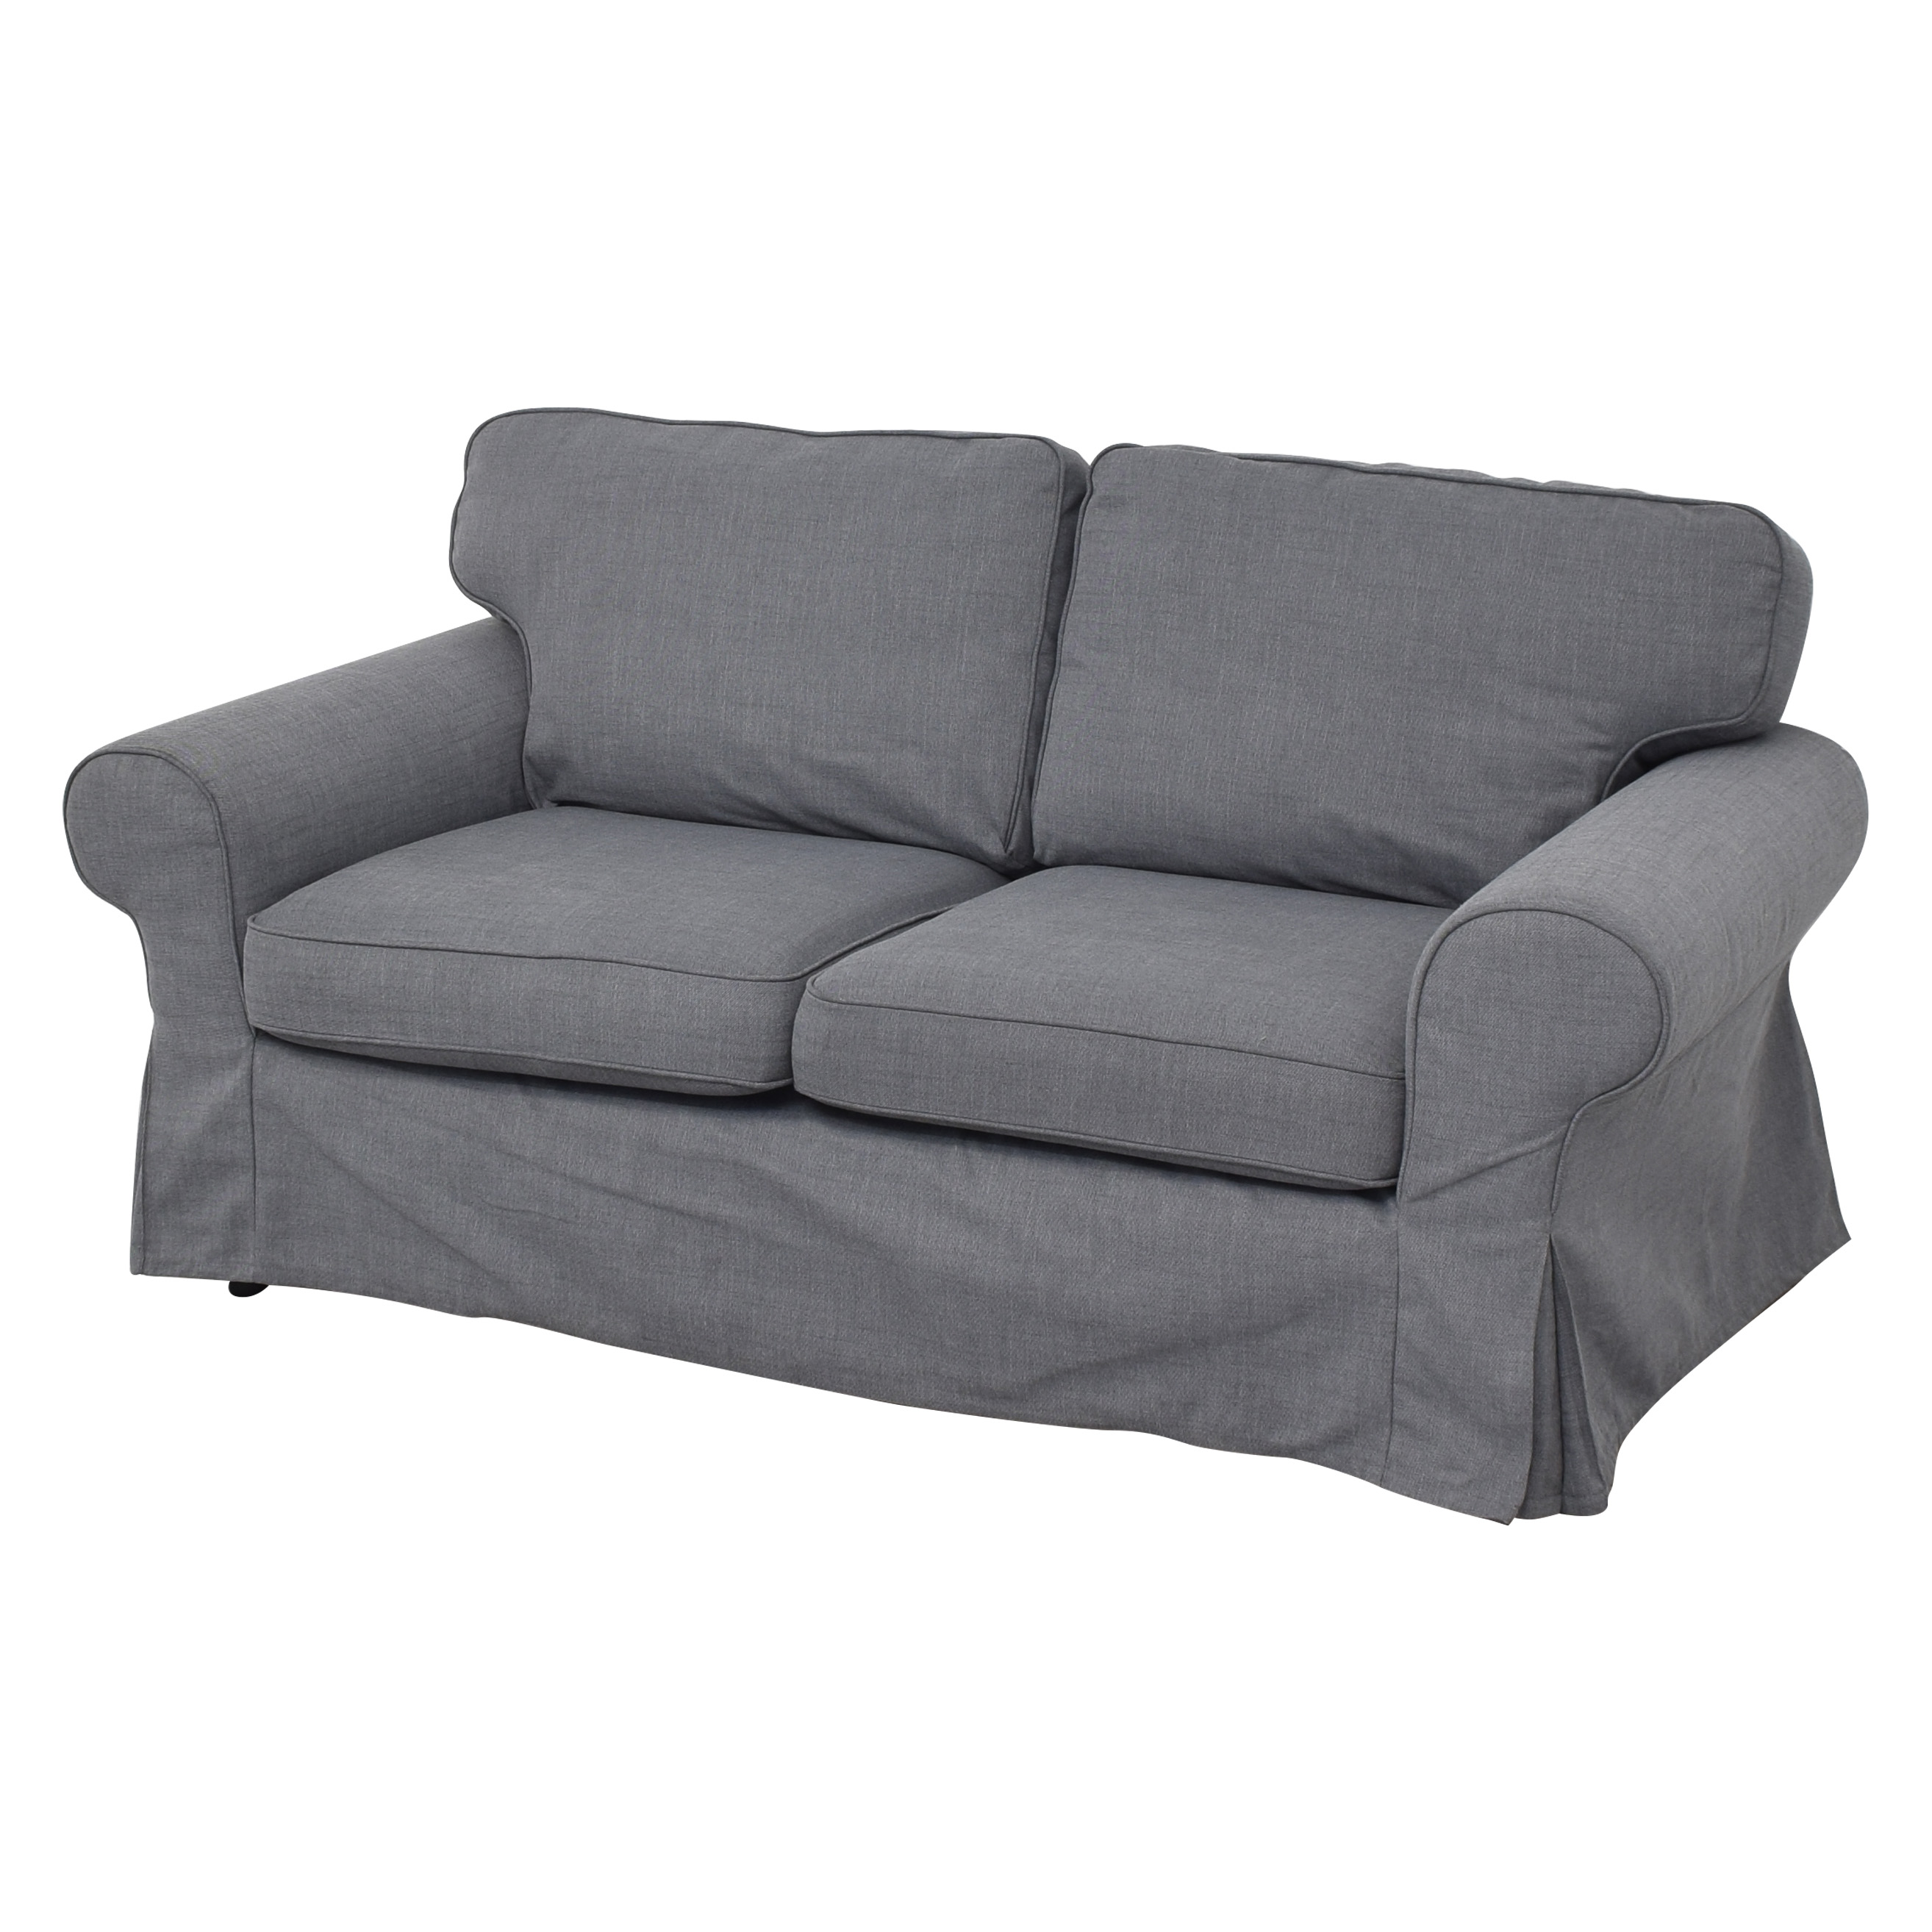 IKEA Ikea Ektorp Loveseat for sale